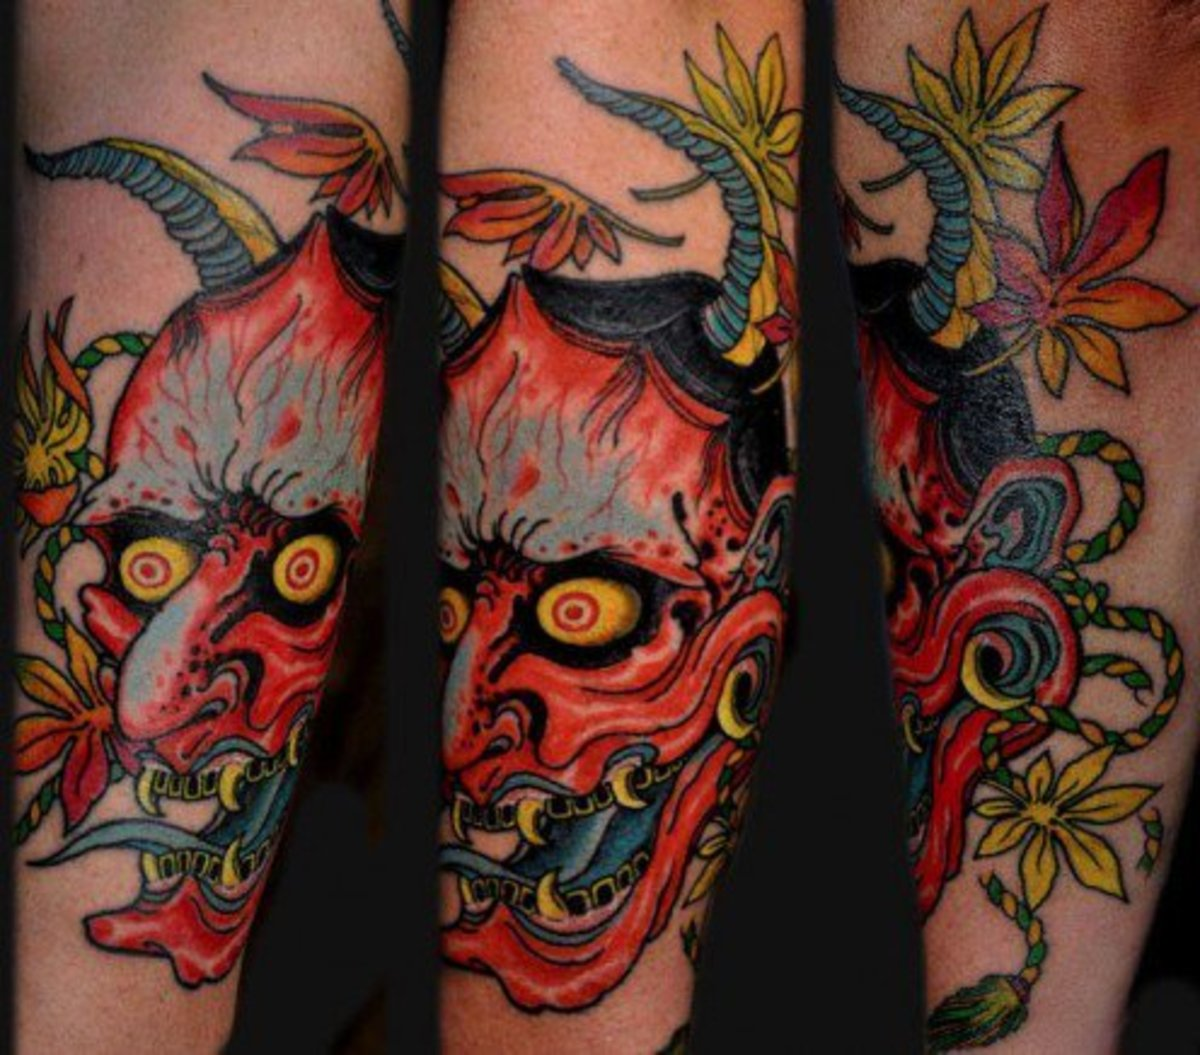 Hannya sleeve tattoo design